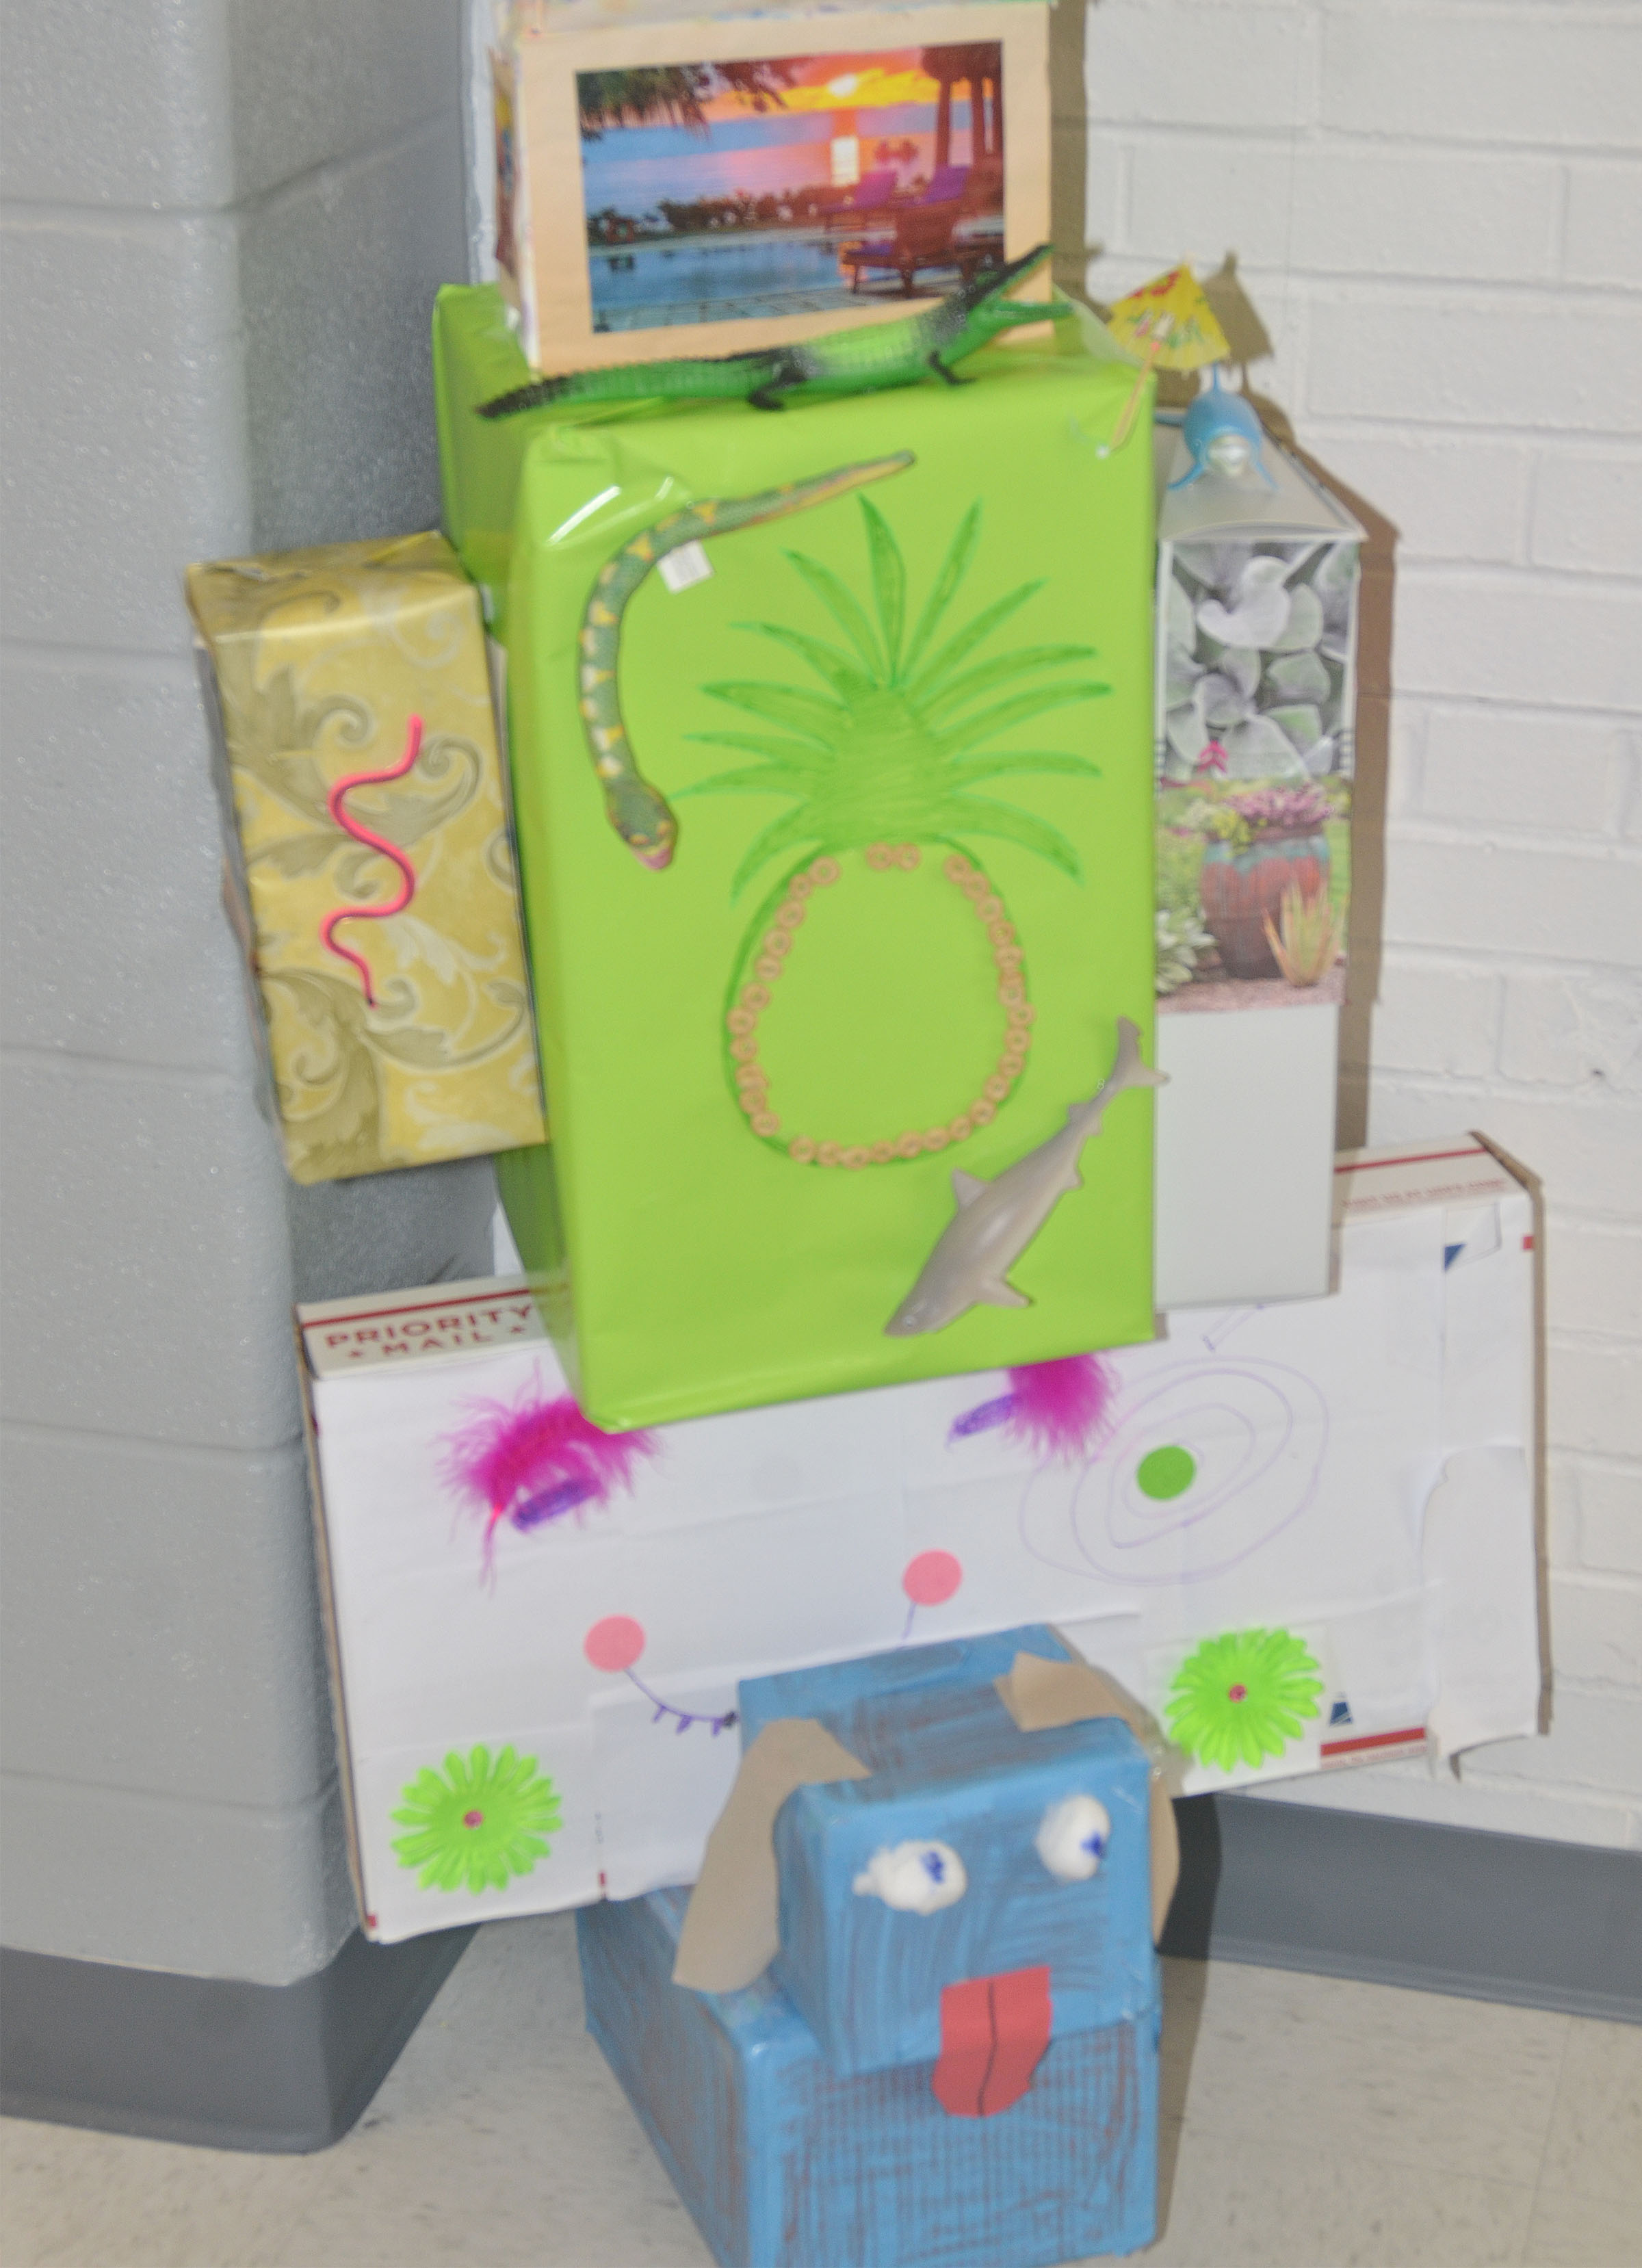 To prepare for upcoming state testing, CES third-grade teachers are decorating their hallway with a jungle theme. Students were given bonus points in their classes if they made totem pole boxes, like these, to help decorate.